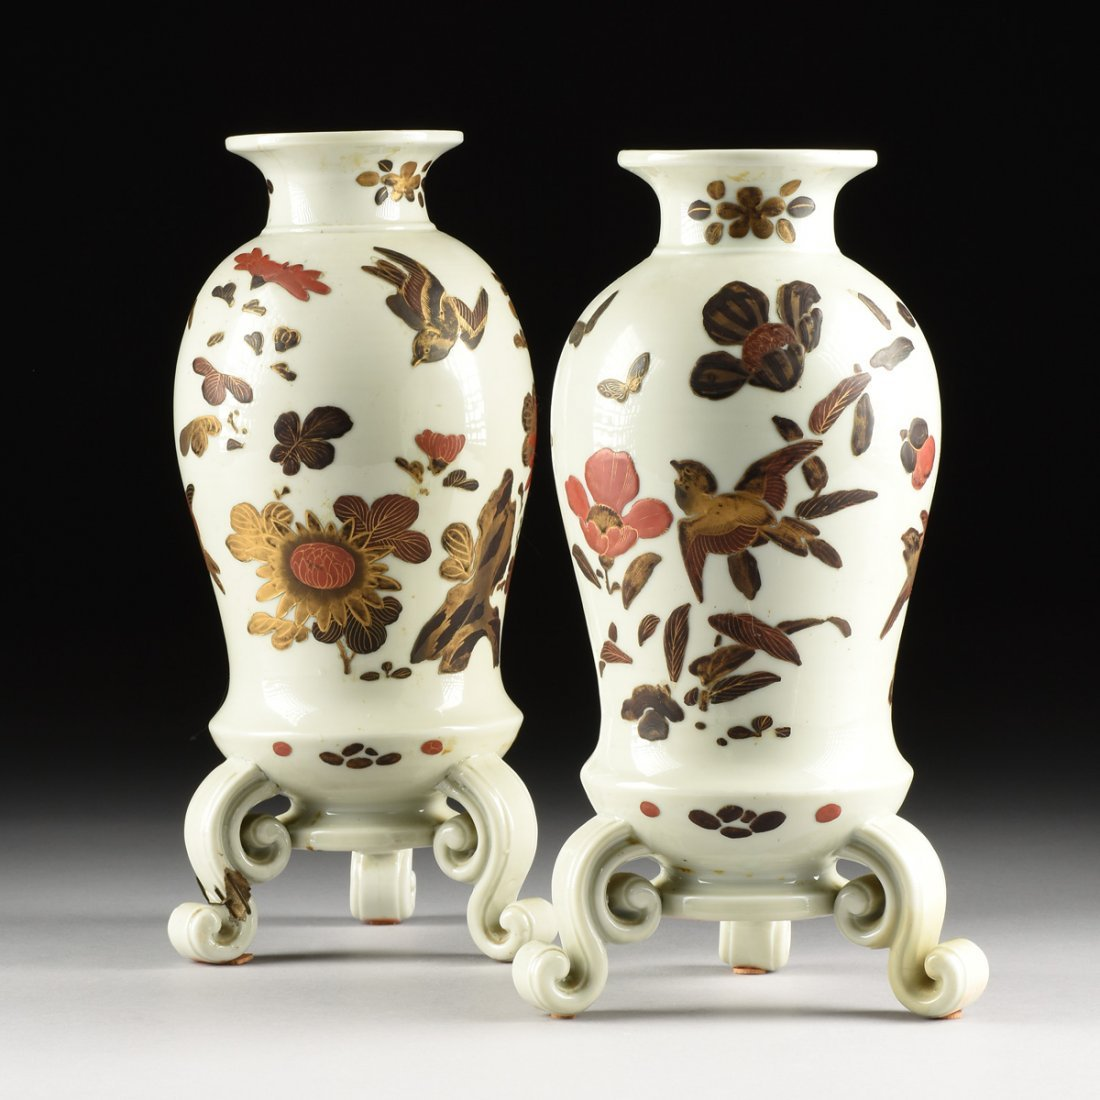 A PAIR OF UNUSUAL CHINESE PARCEL GILT AND POLYCHROME